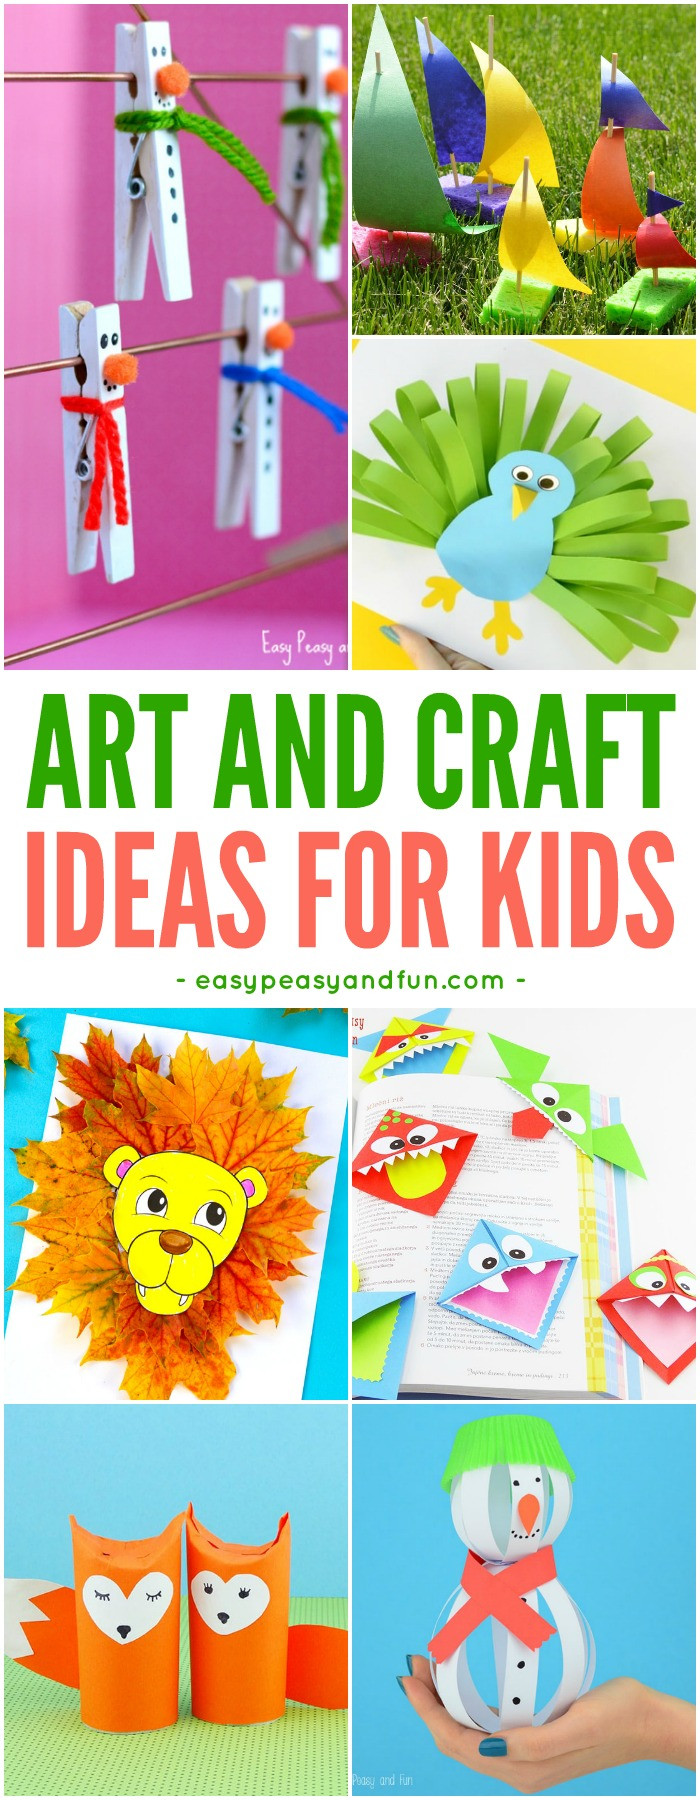 Toddler Arts And Craft Ideas  Crafts For Kids Tons of Art and Craft Ideas for Kids to